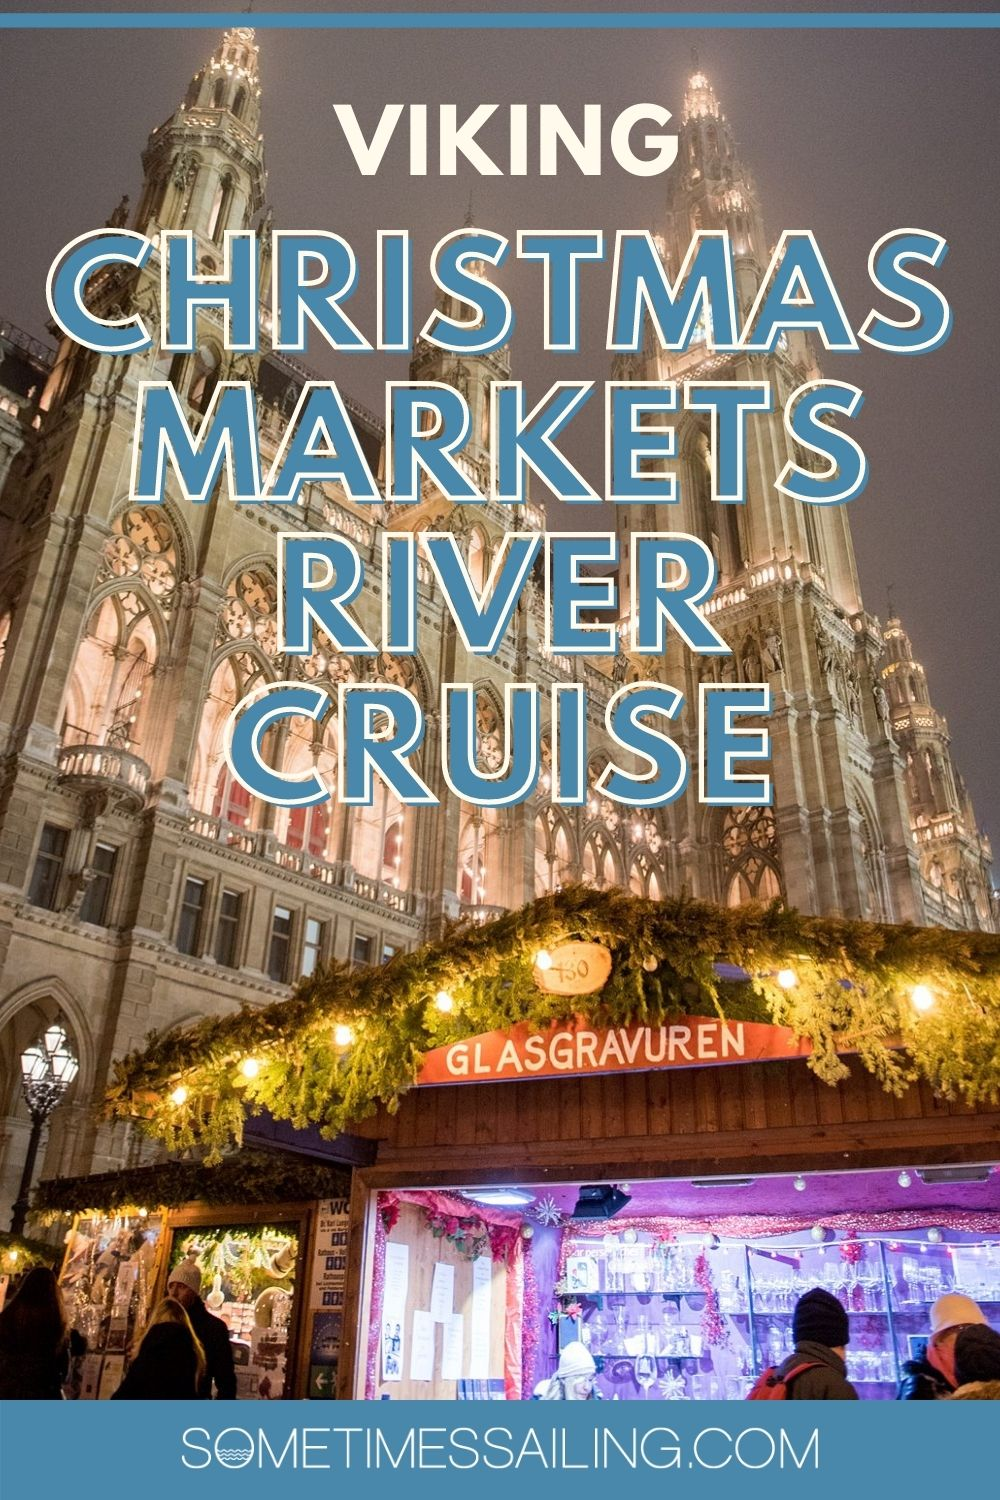 Viking Christmas Markets River Cruise with a tall European building in night lighting and a market kiosk in the foreground